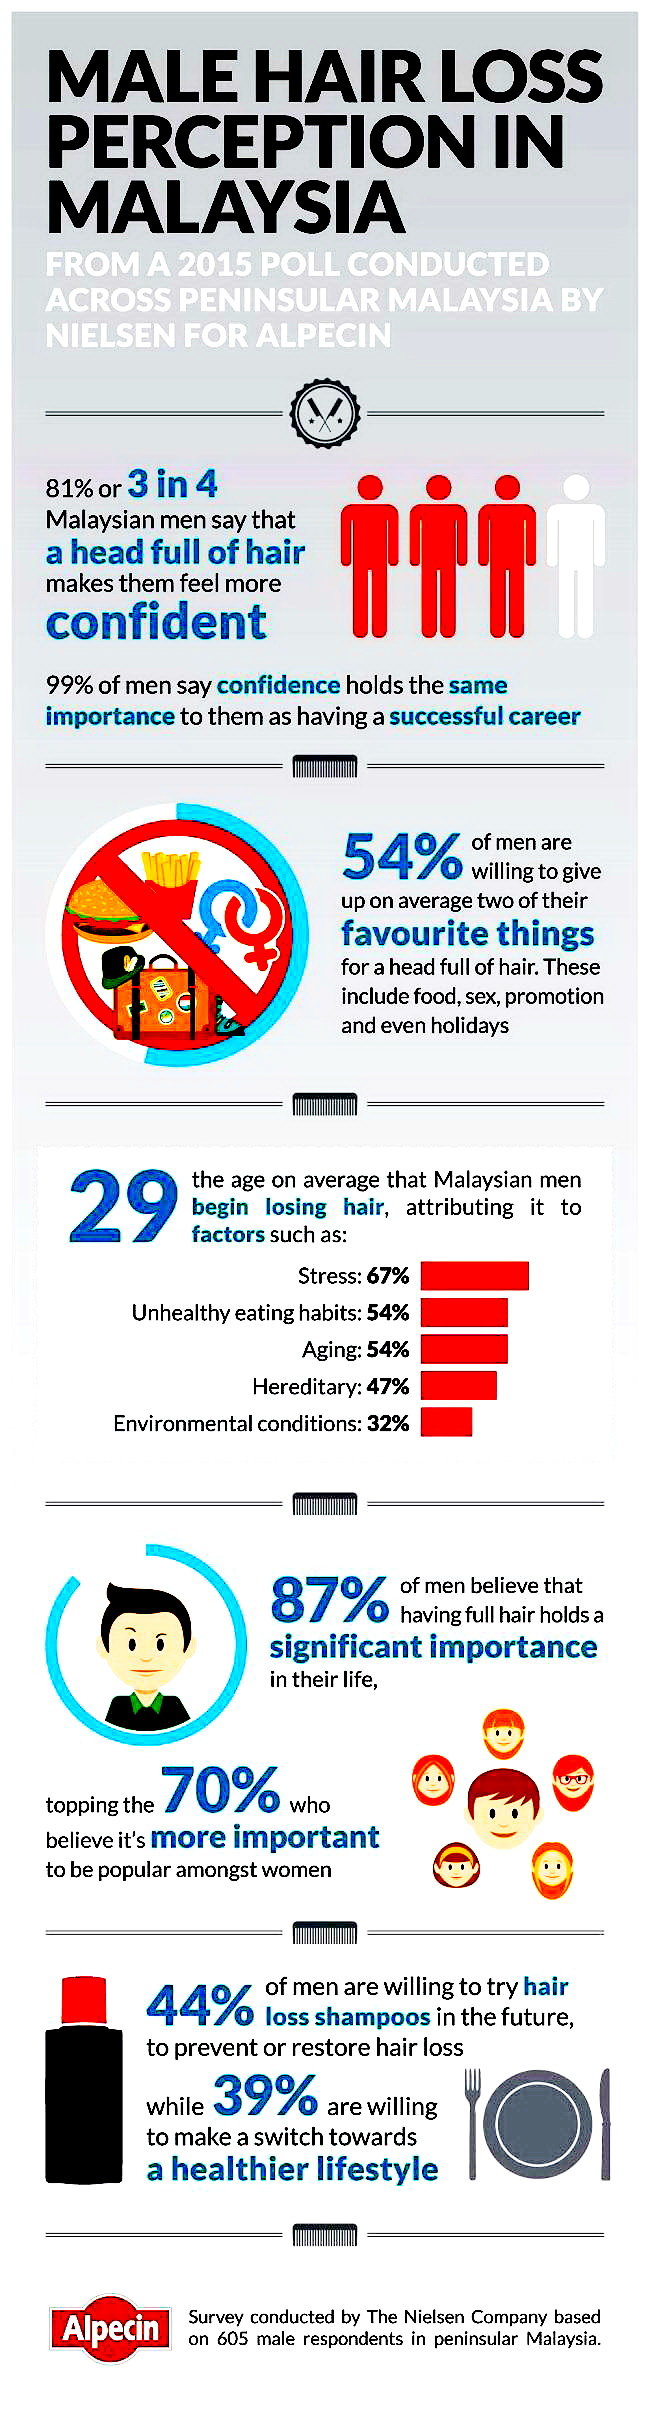 Male Hair Loss Perception in Malaysia